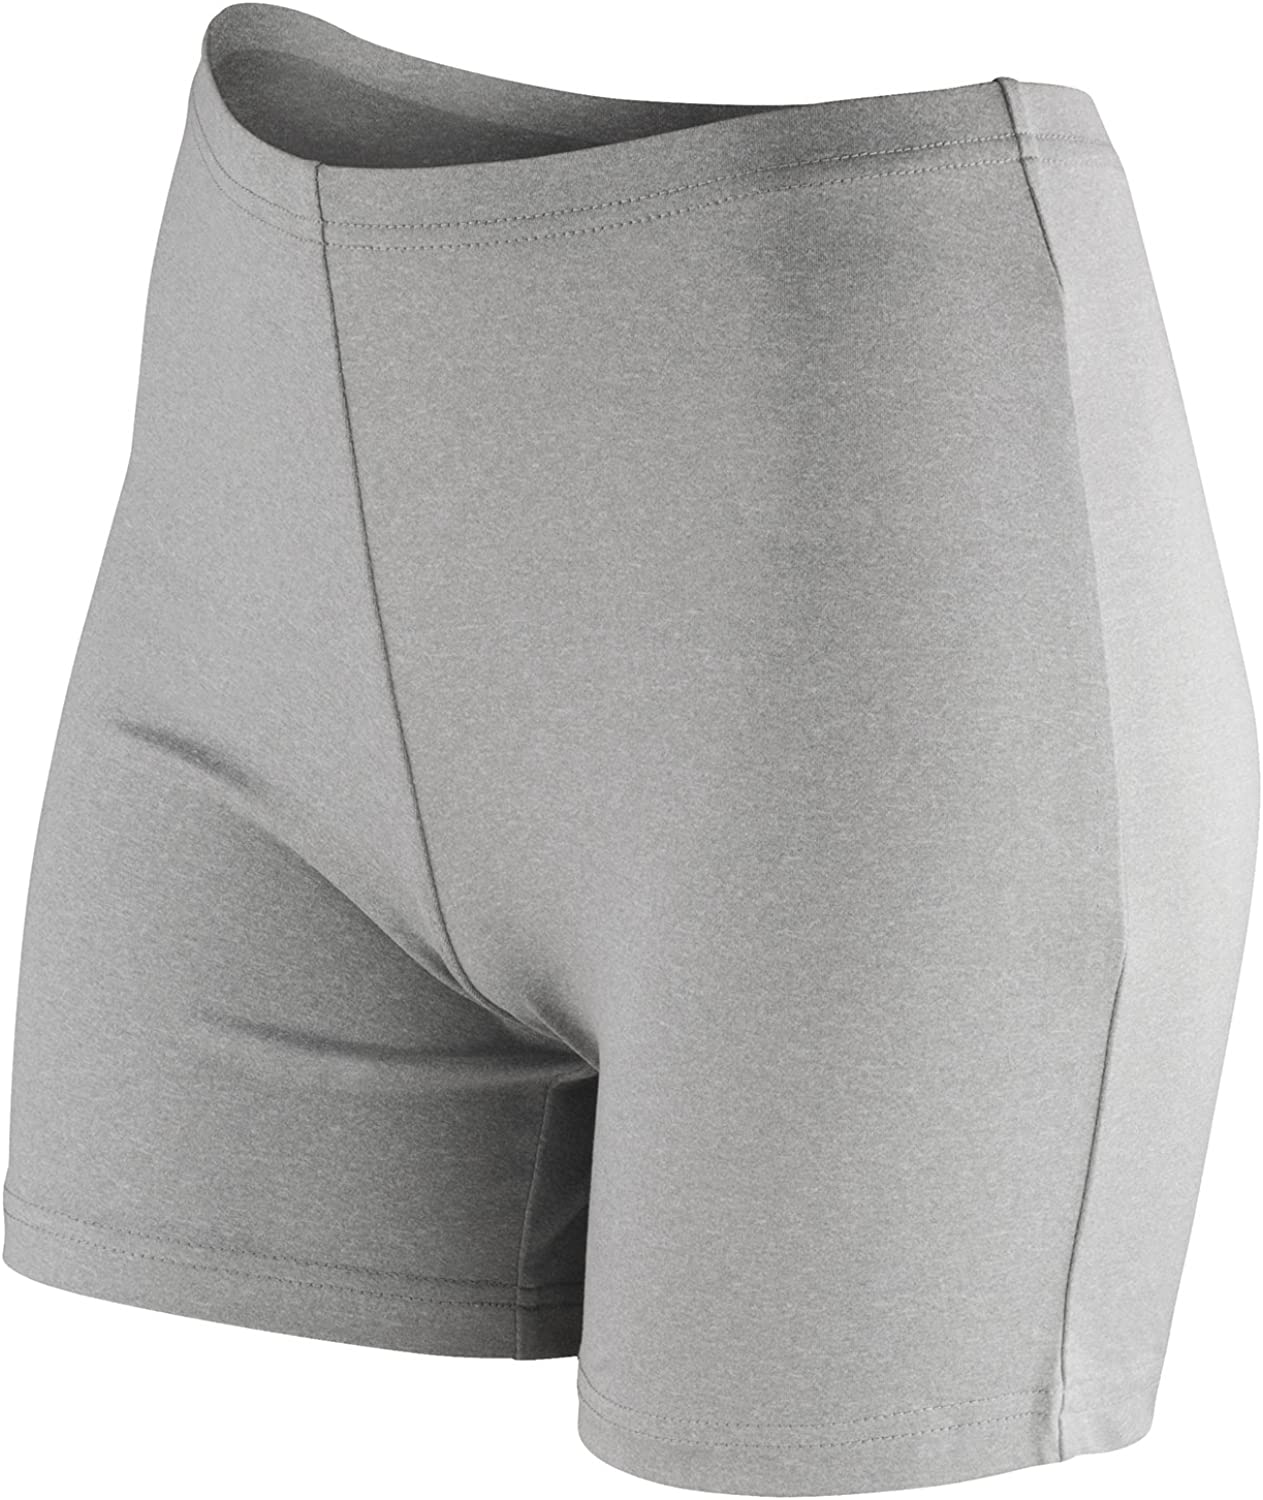 Spiro Softex Womens Fitness Athletic Shorts 3 Colours Black 2XL